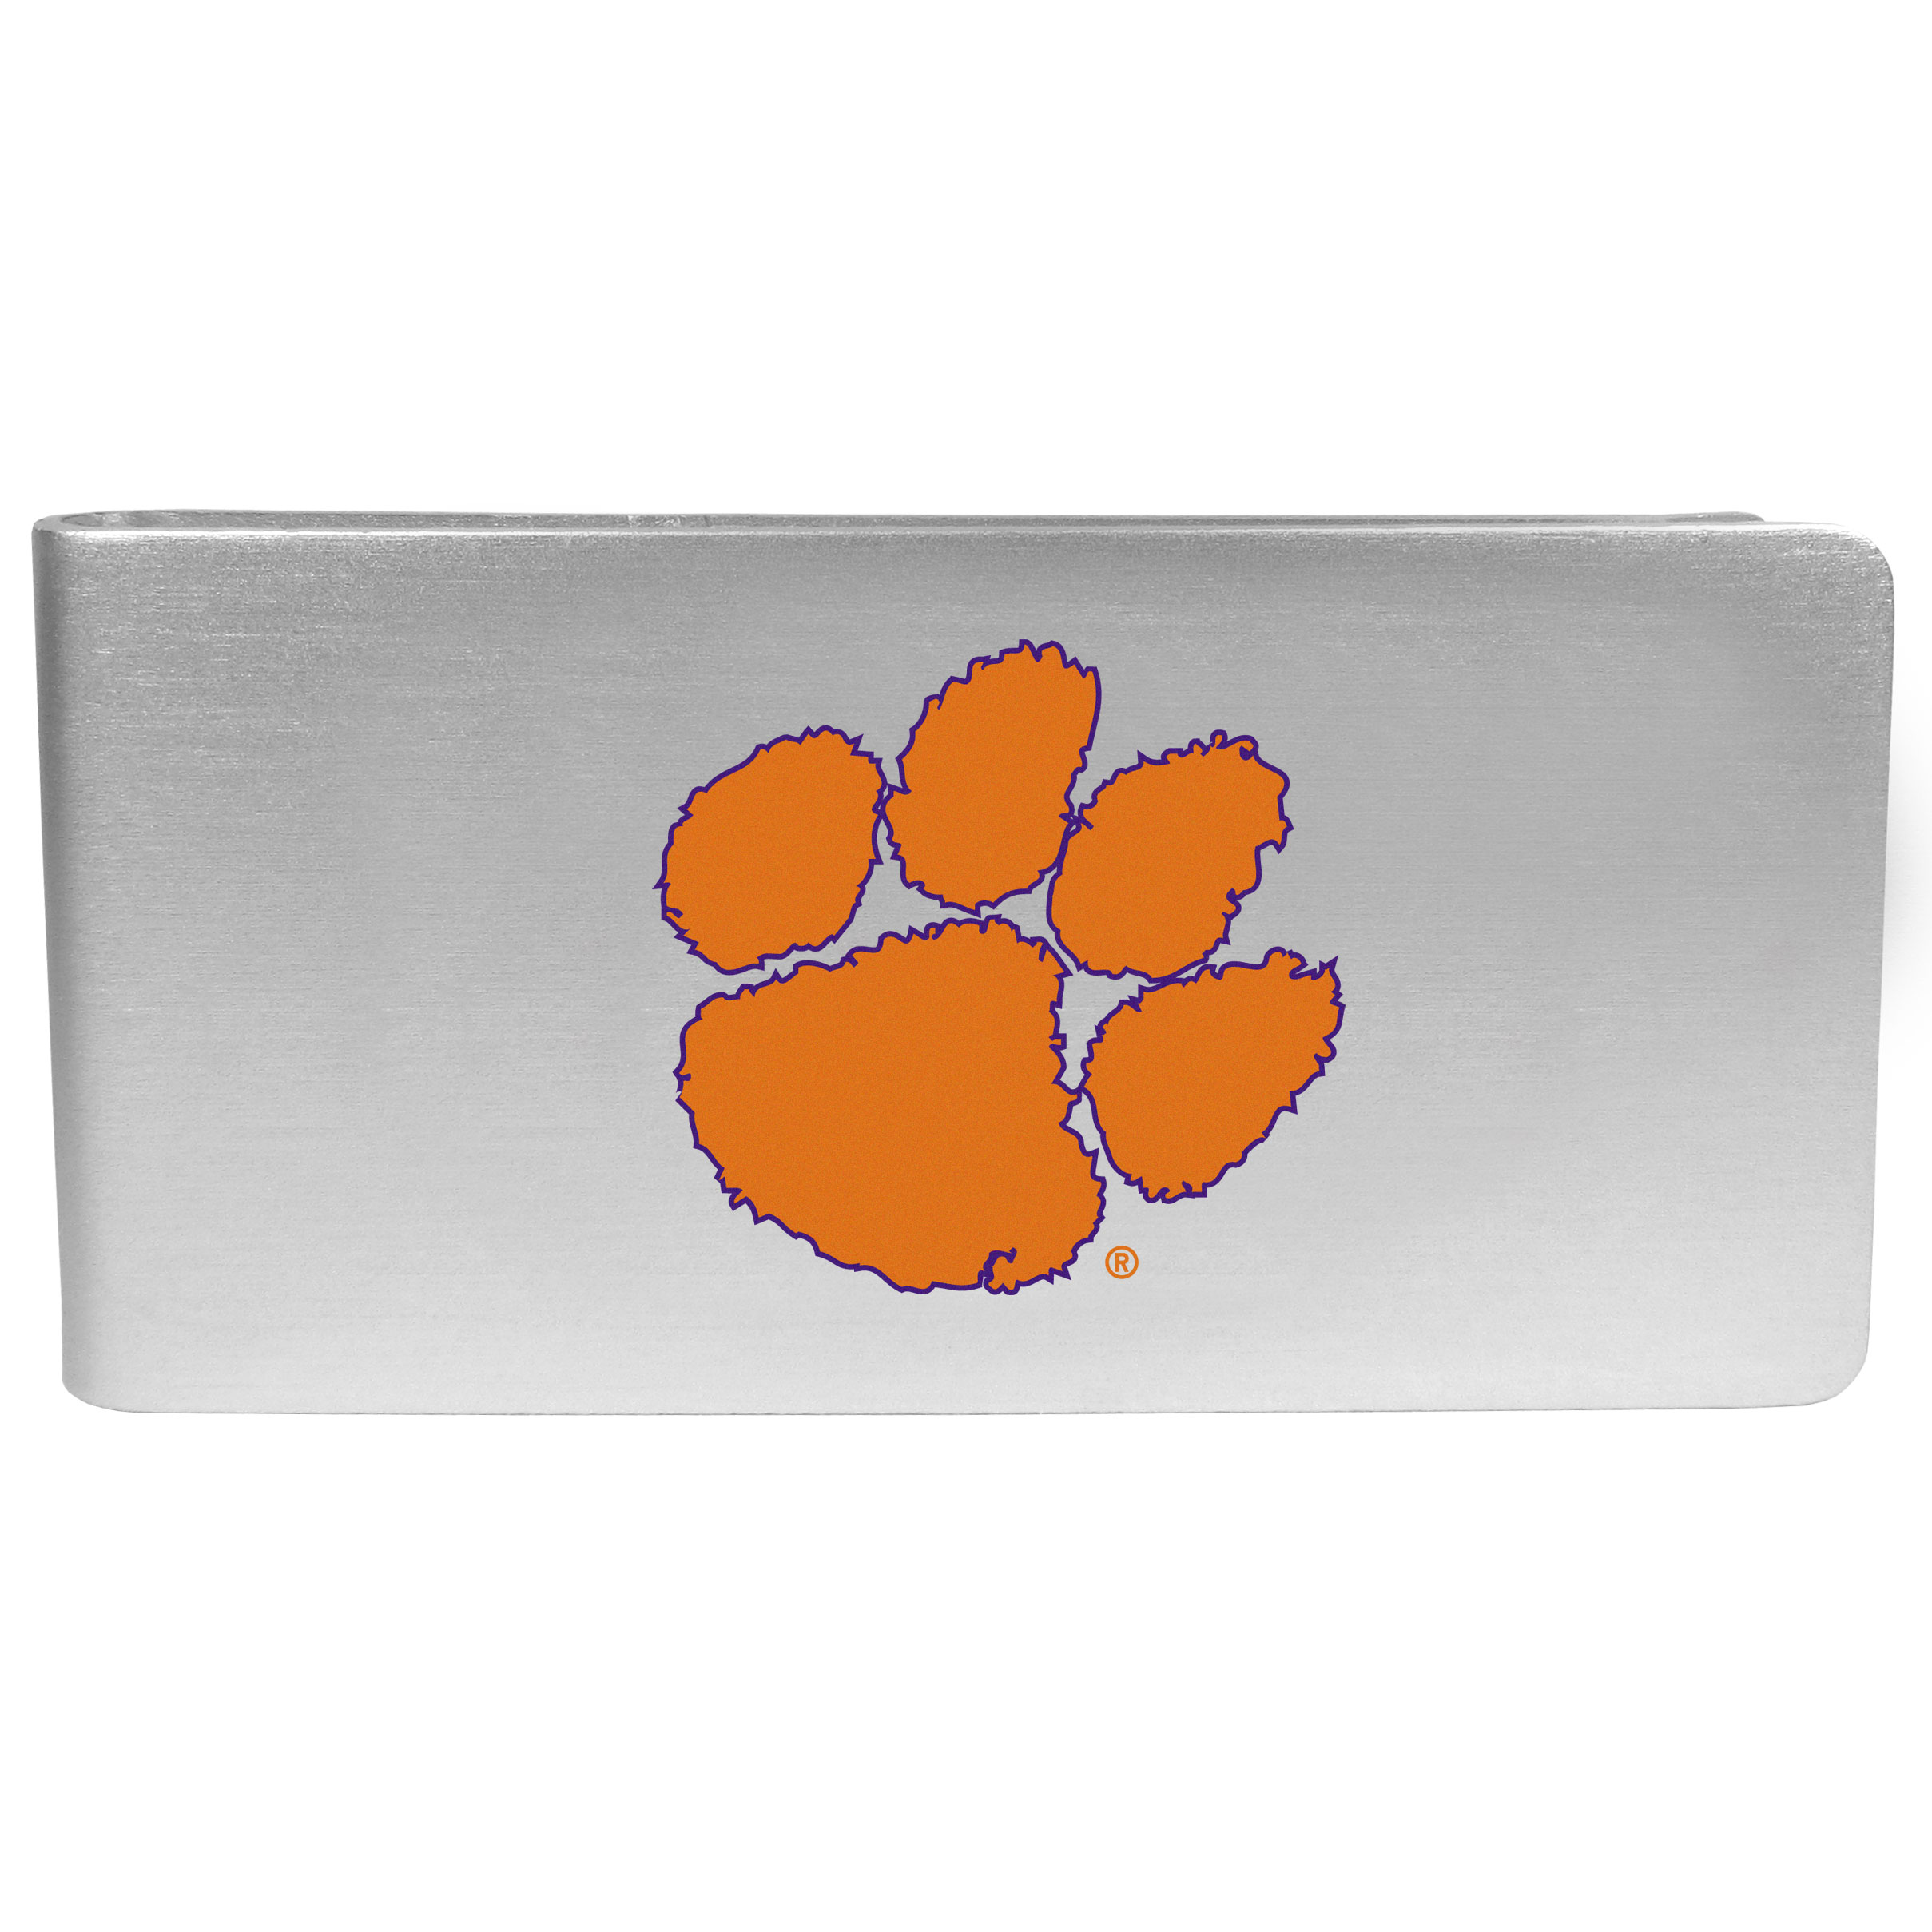 Clemson Tigers Logo Money Clip - Our brushed metal money clip has classic style and functionality. The attractive clip features the Clemson Tigers logo expertly printed on front.